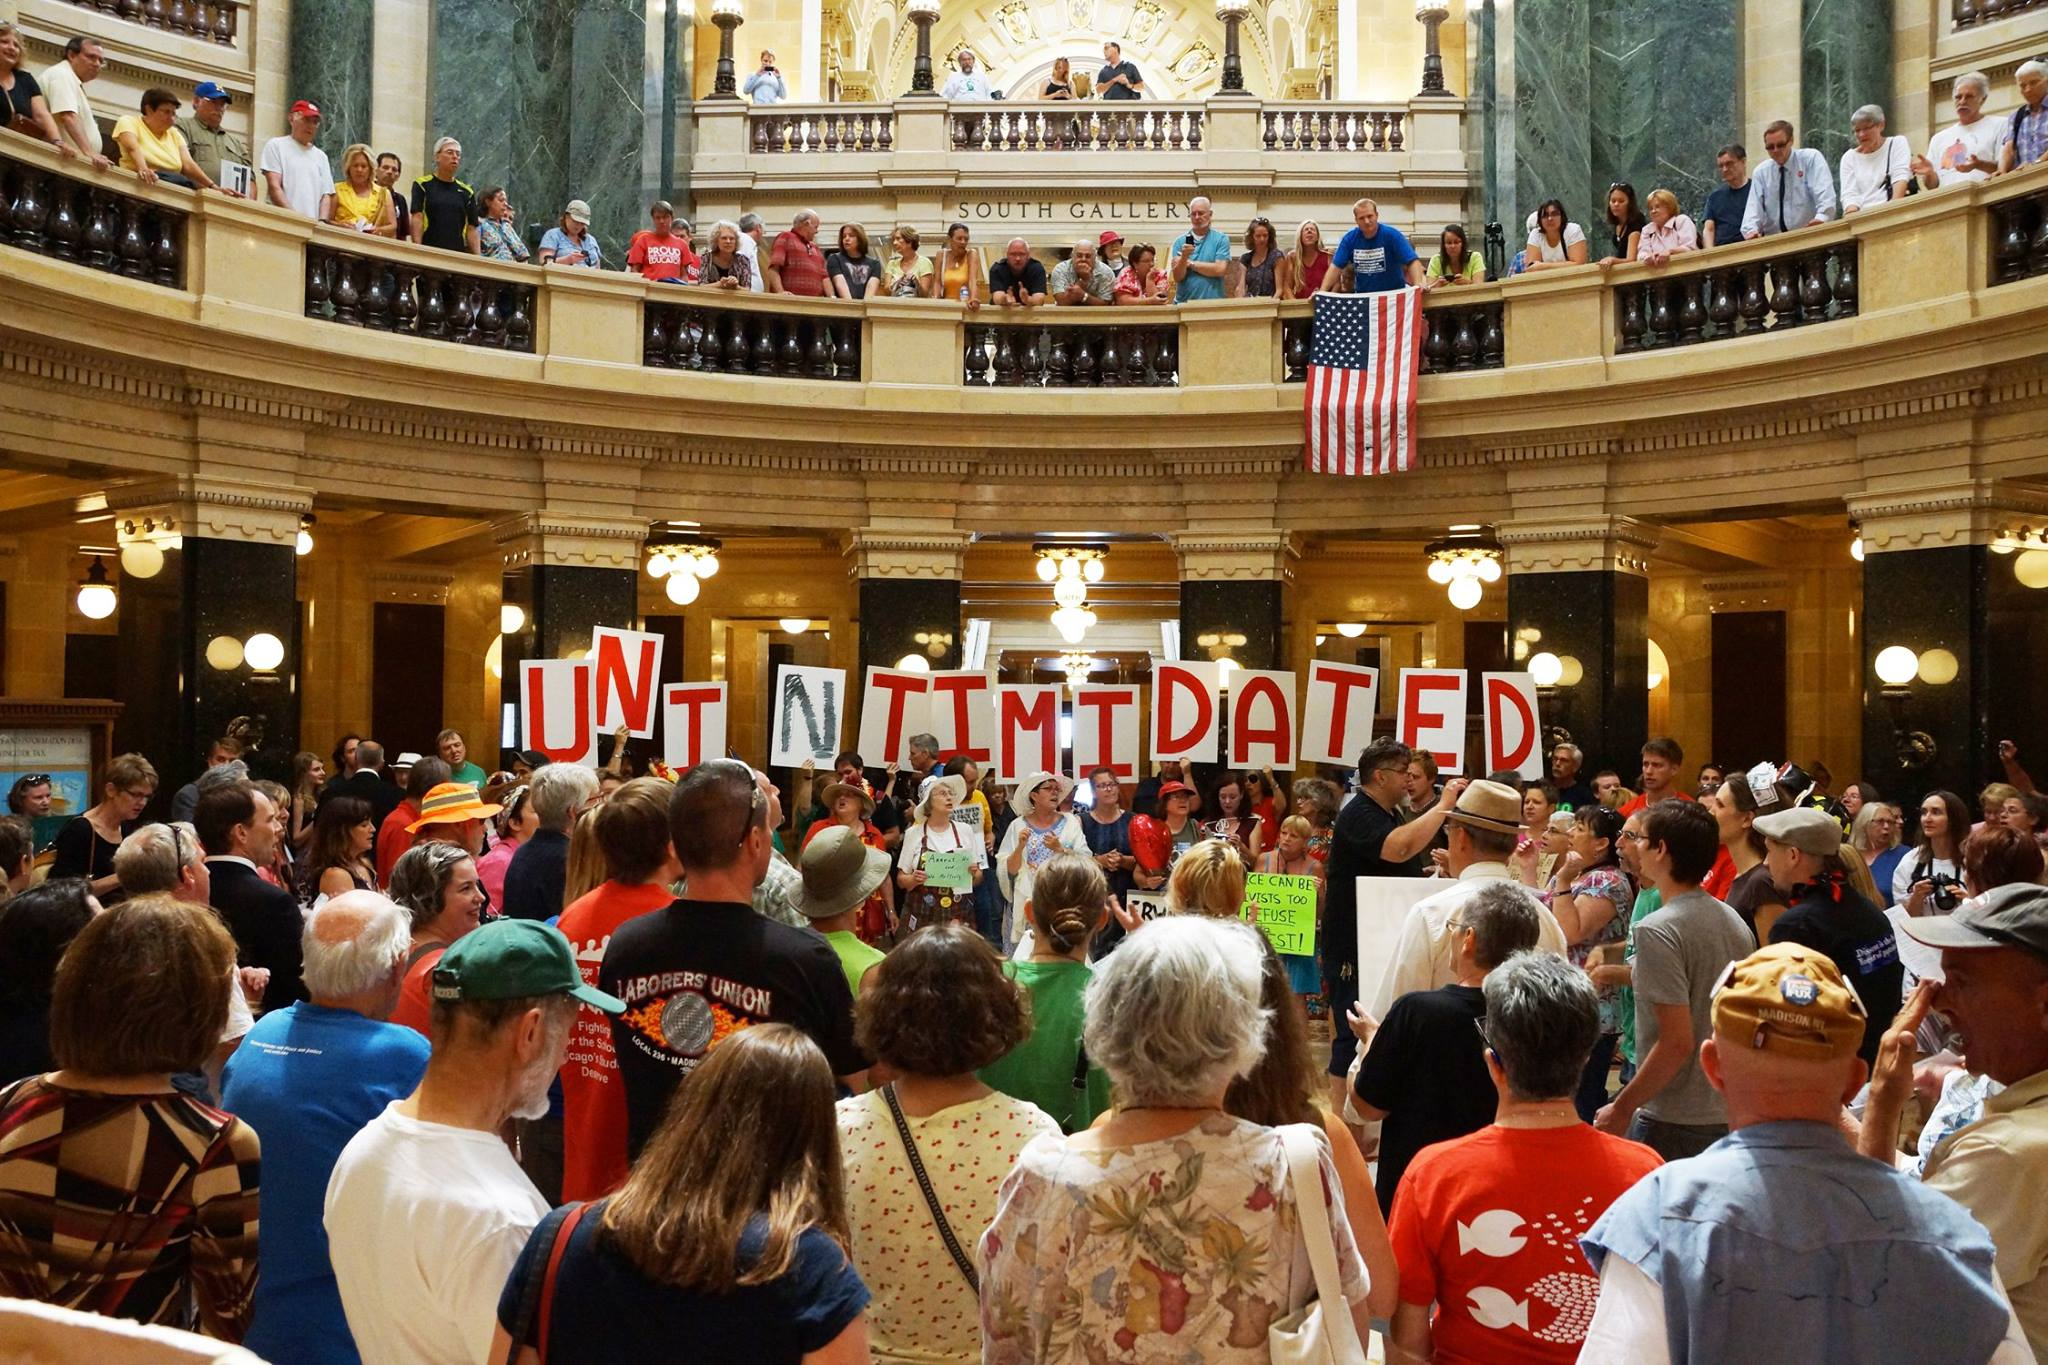 Solidarity Wisconsin